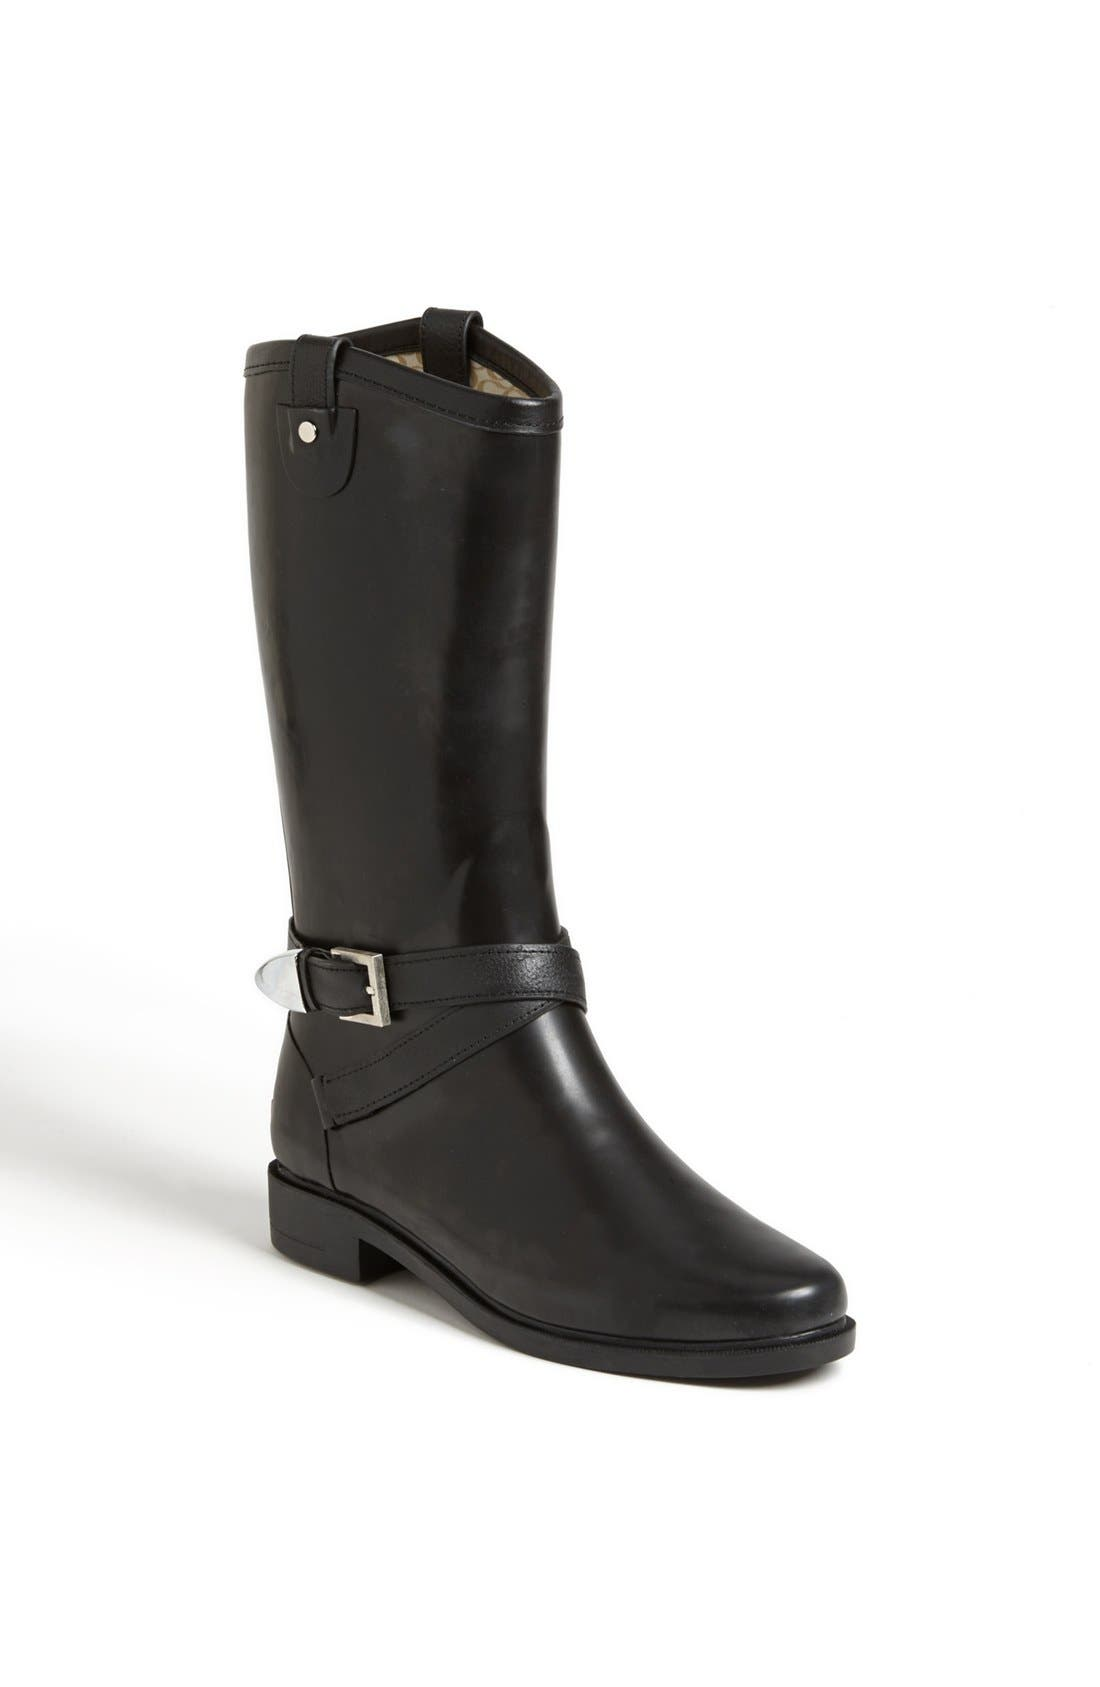 Alternate Image 1 Selected - Chooka 'Lorum Strap' Rain Boot (Women)